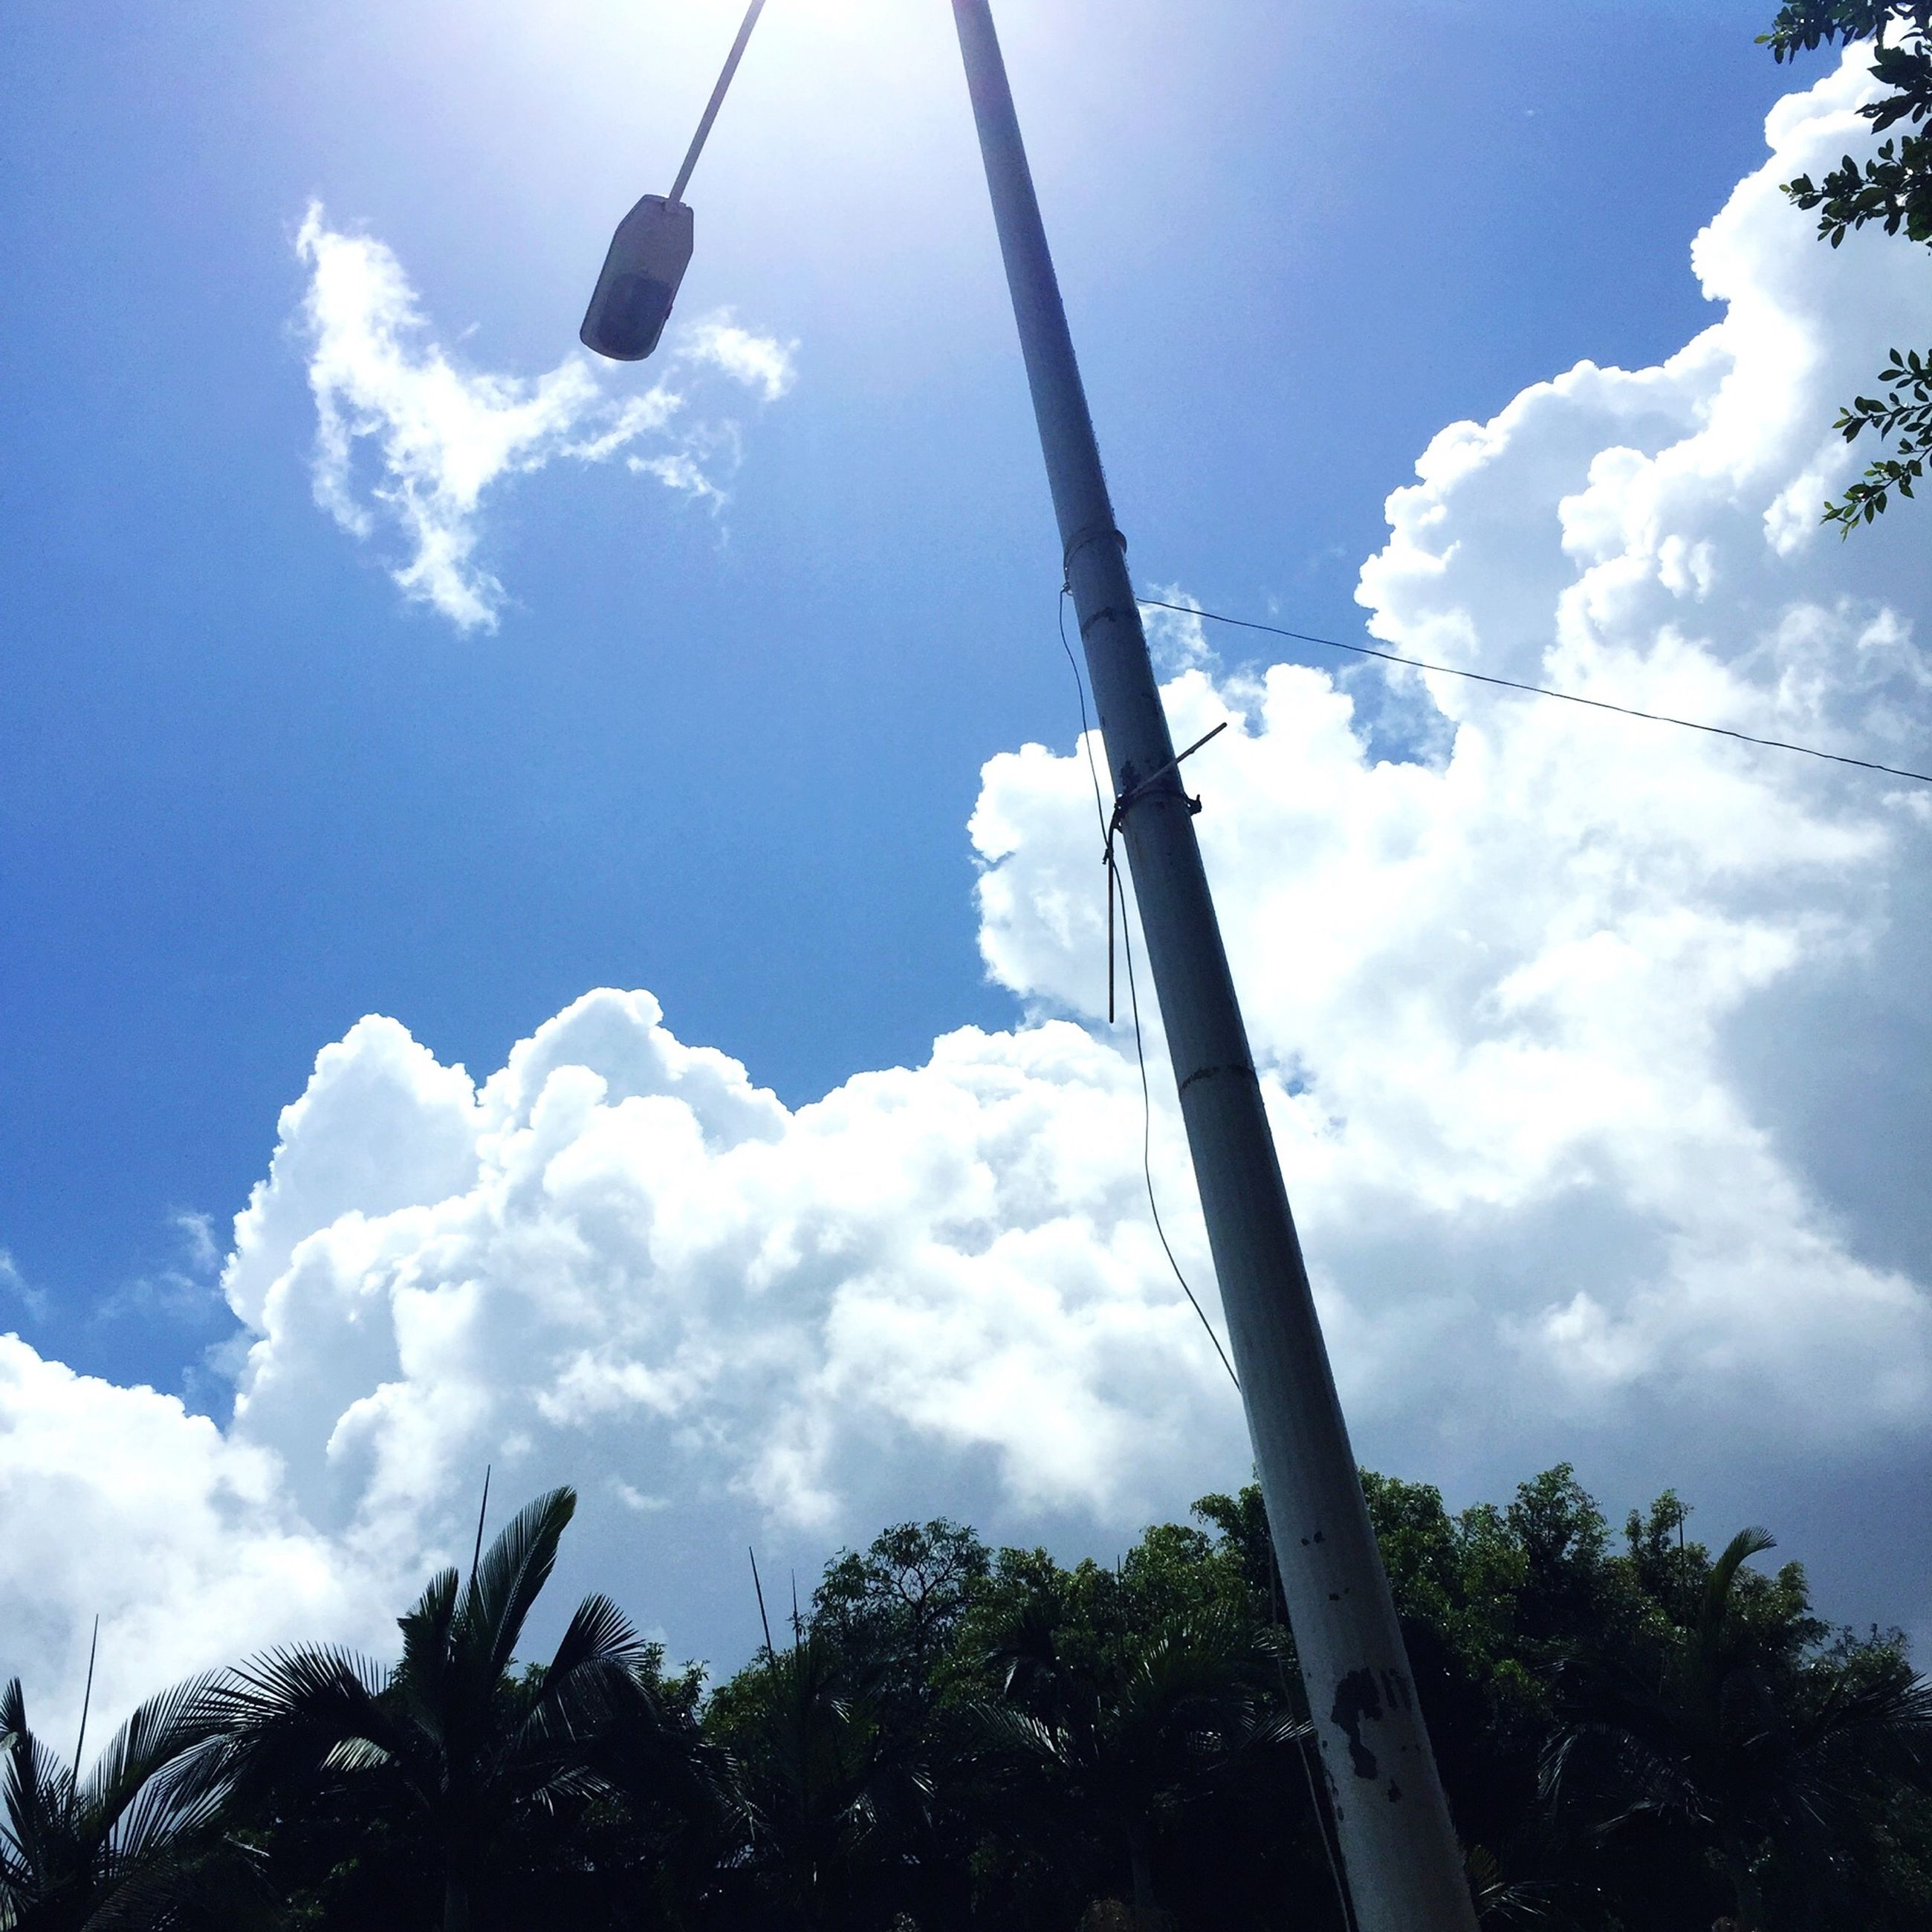 low angle view, sky, cloud - sky, tree, blue, transportation, cloud, cloudy, day, mode of transport, nature, outdoors, tranquility, overhead cable car, travel, street light, beauty in nature, scenics, no people, vapor trail